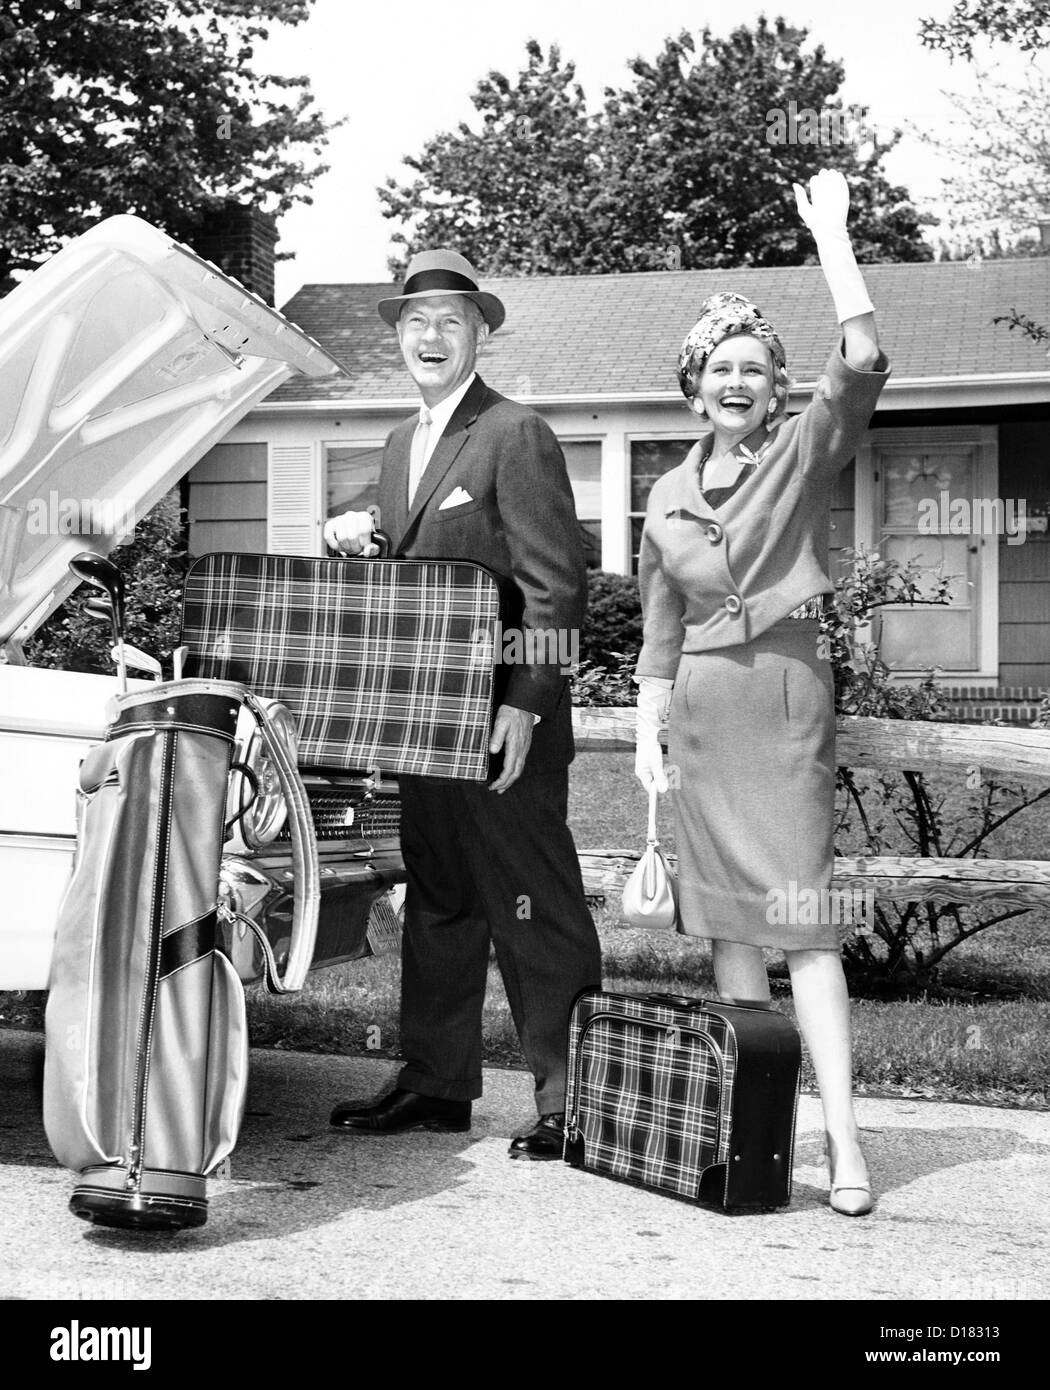 Mature couple loading car trunk for a trip - Stock Image